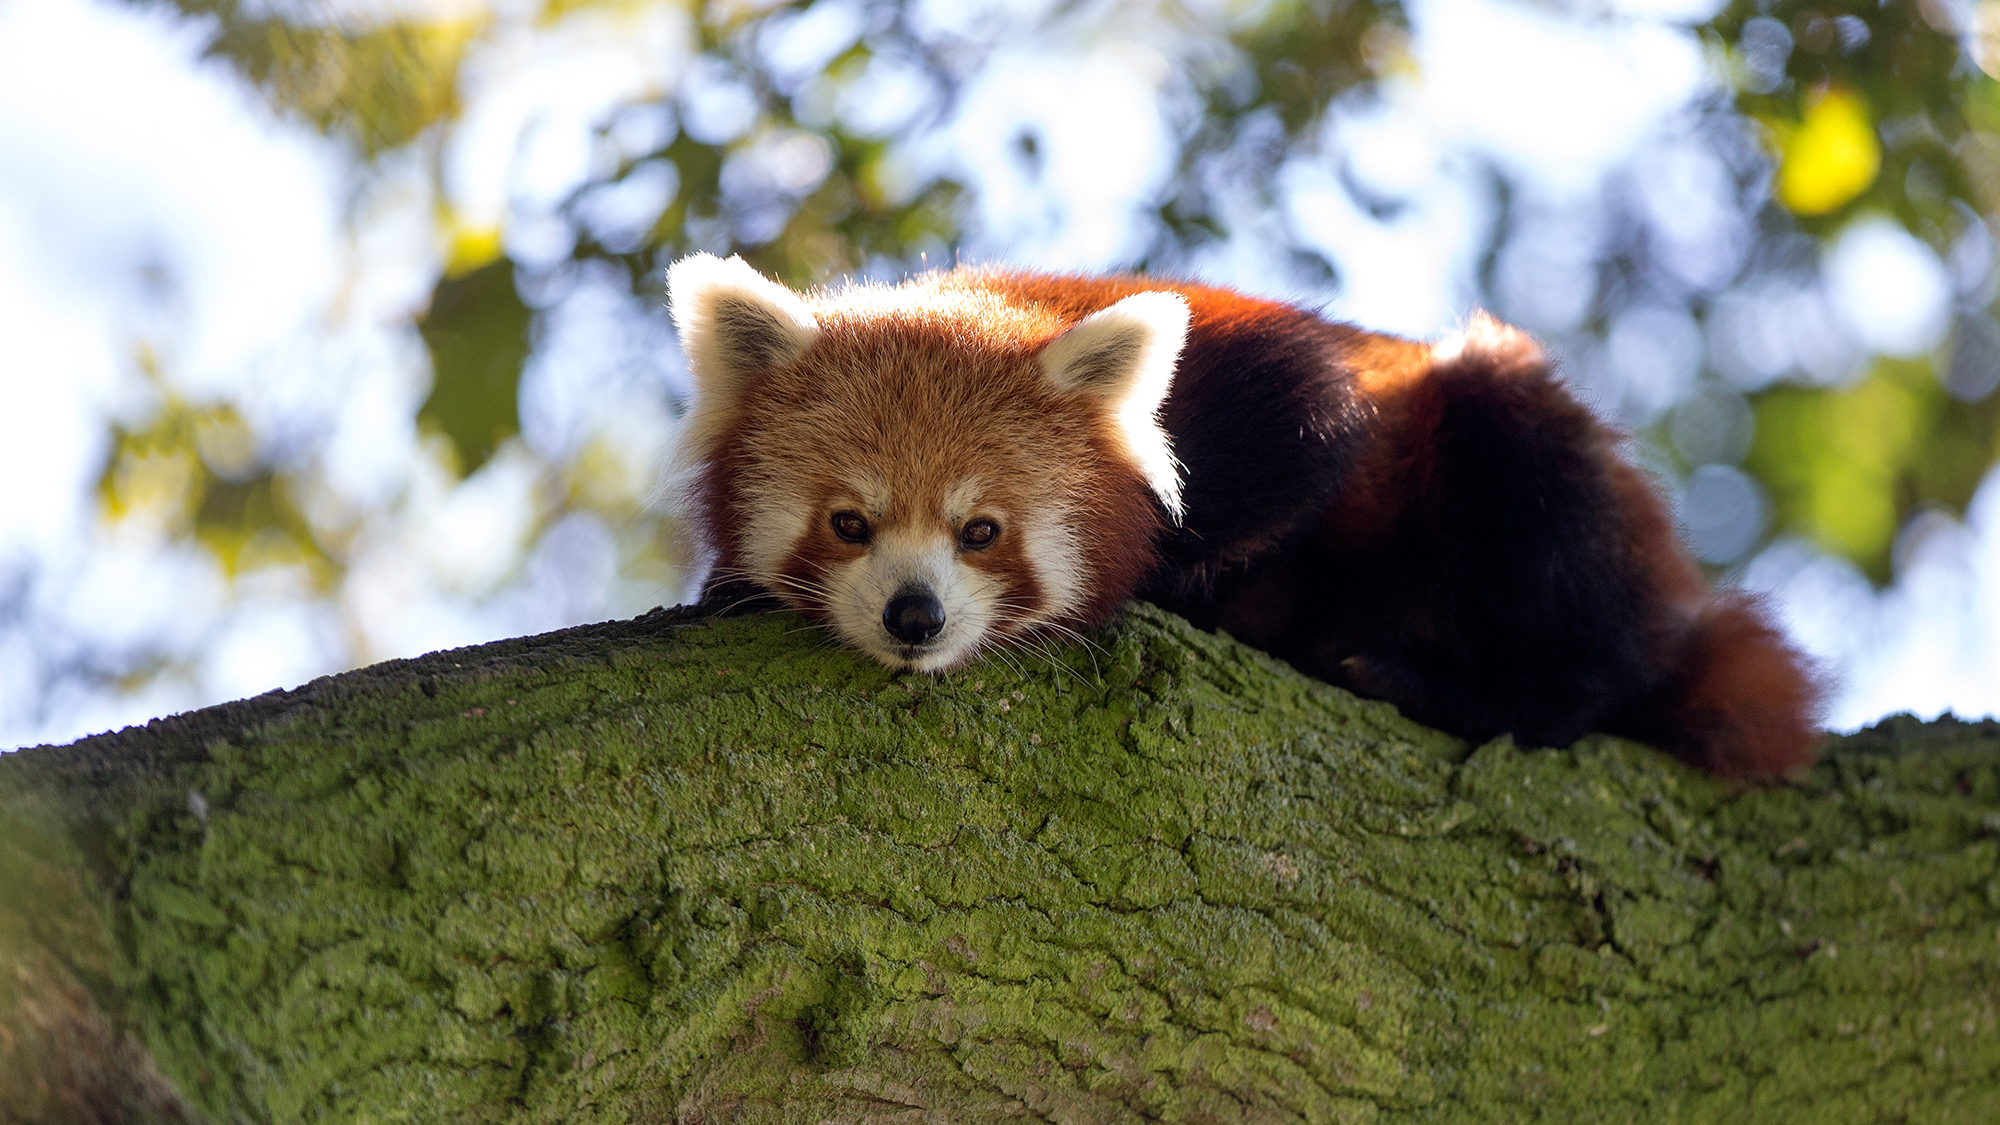 Cute Baby Wallpaper Hd Free Download Red Panda 2 Jpg